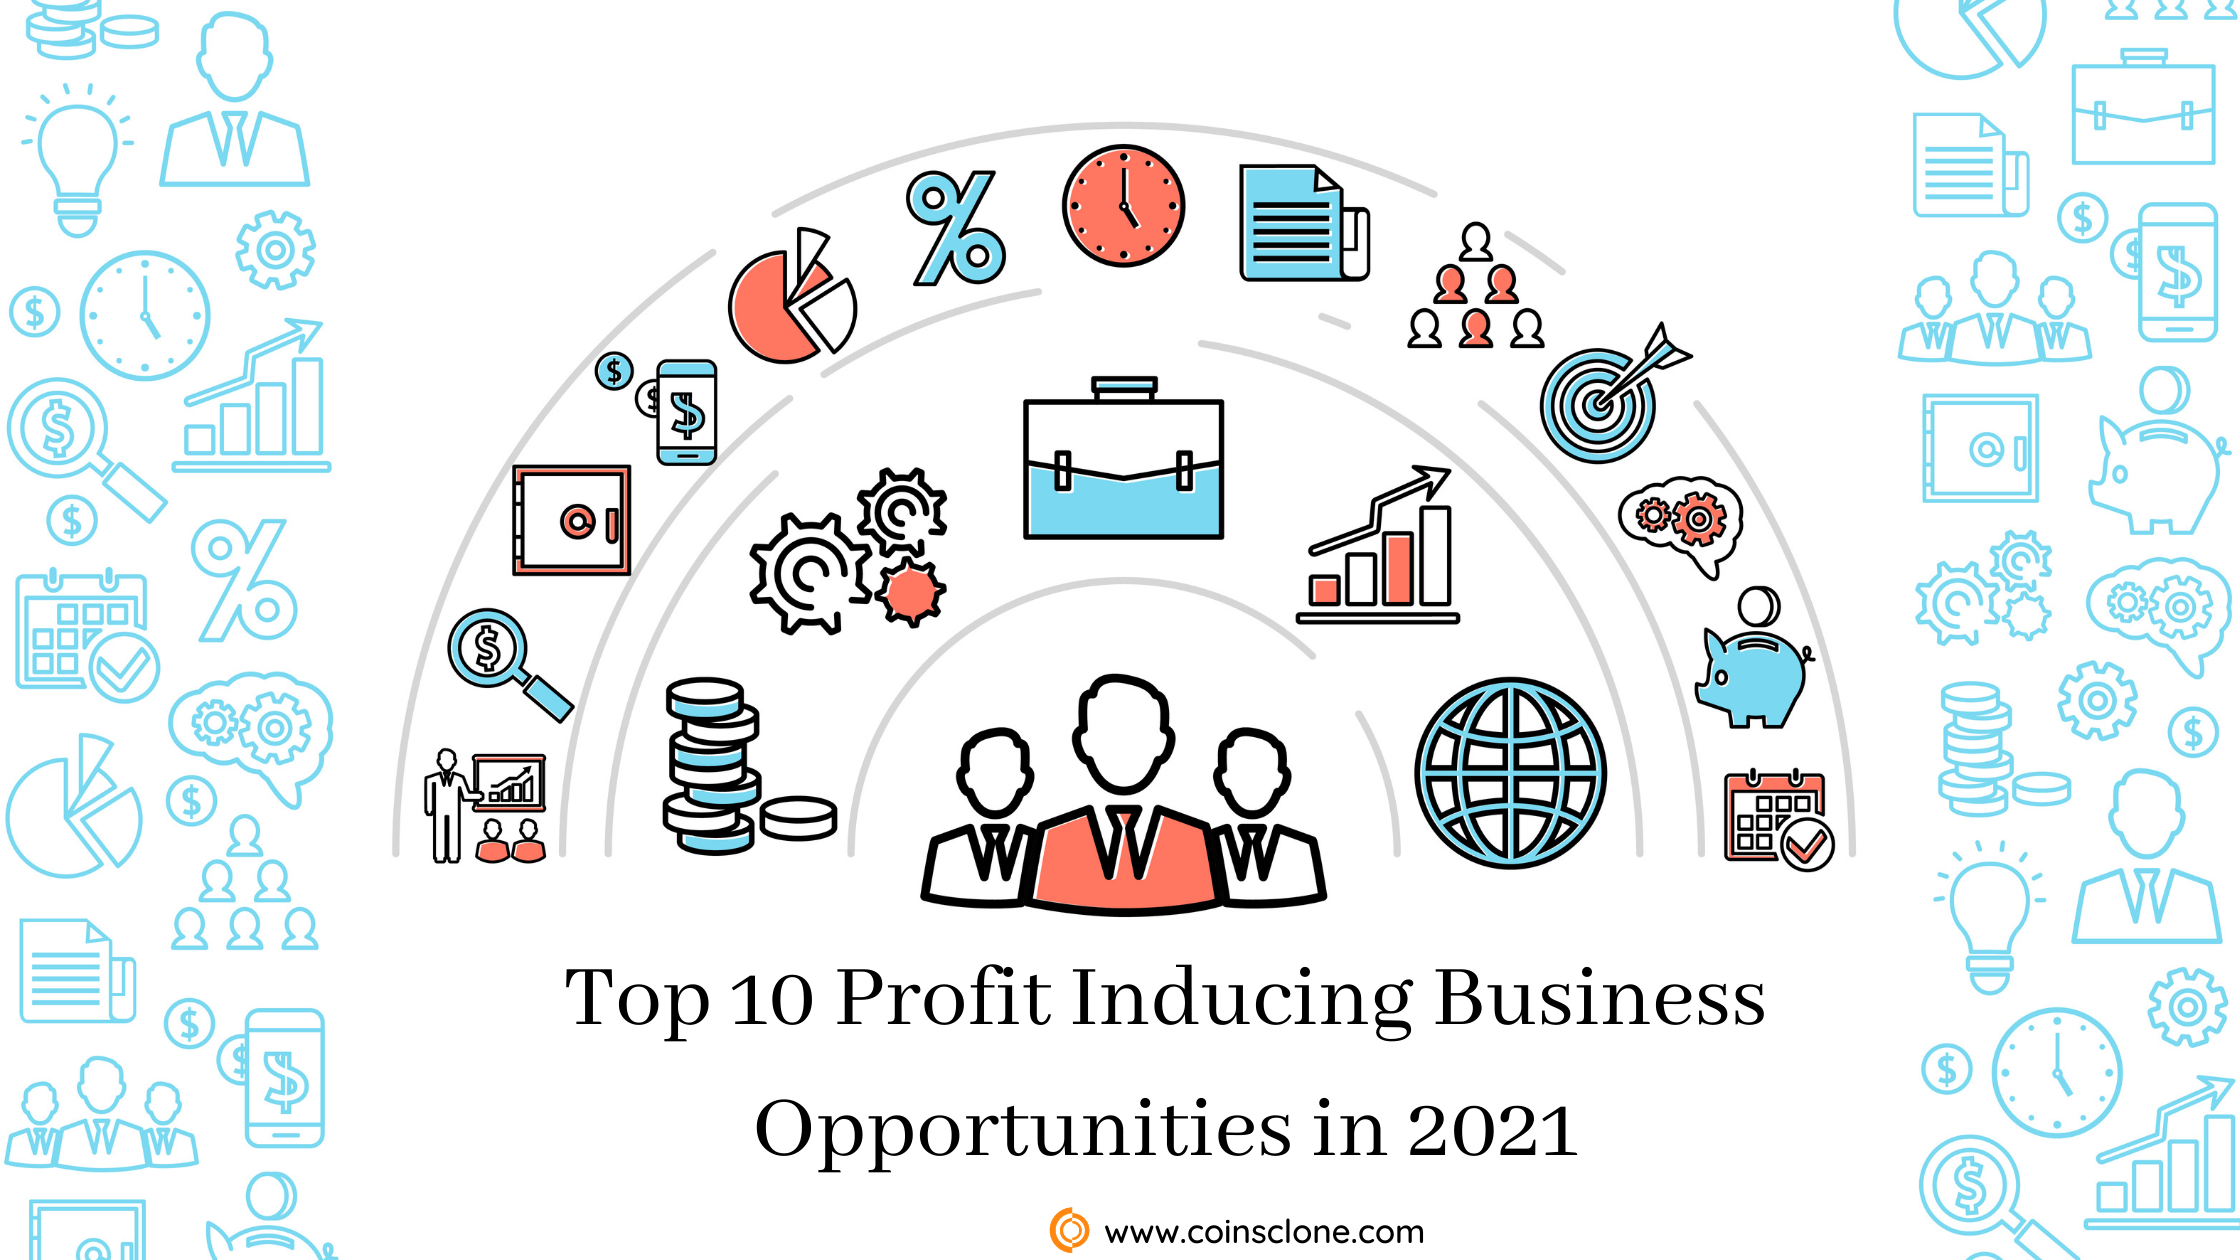 Top 10 Profit Inducing Business opportunities in 2021